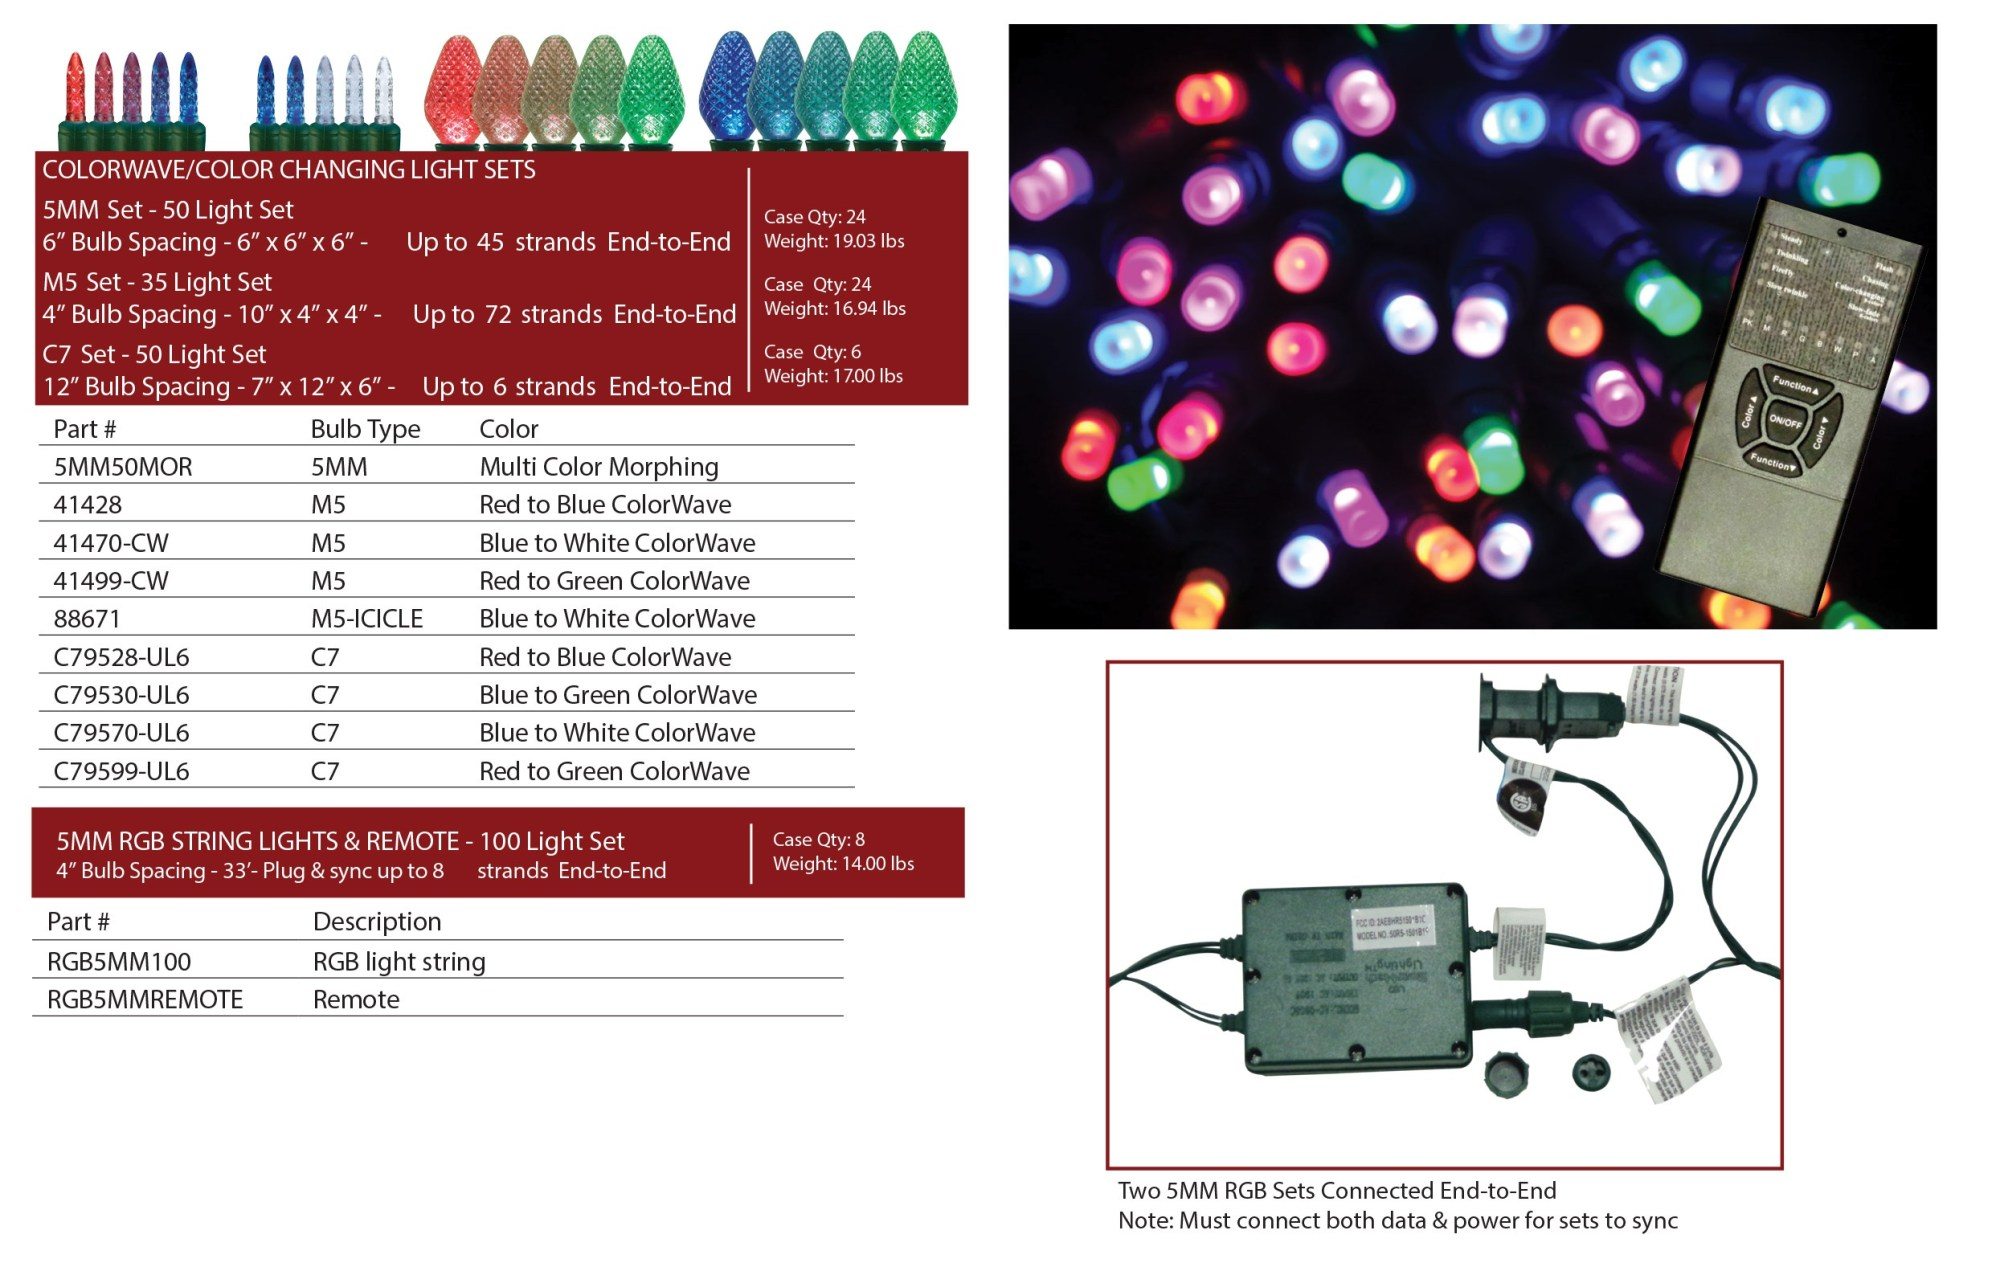 hight resolution of  led rope light snowflakes colorwave color changing light sets